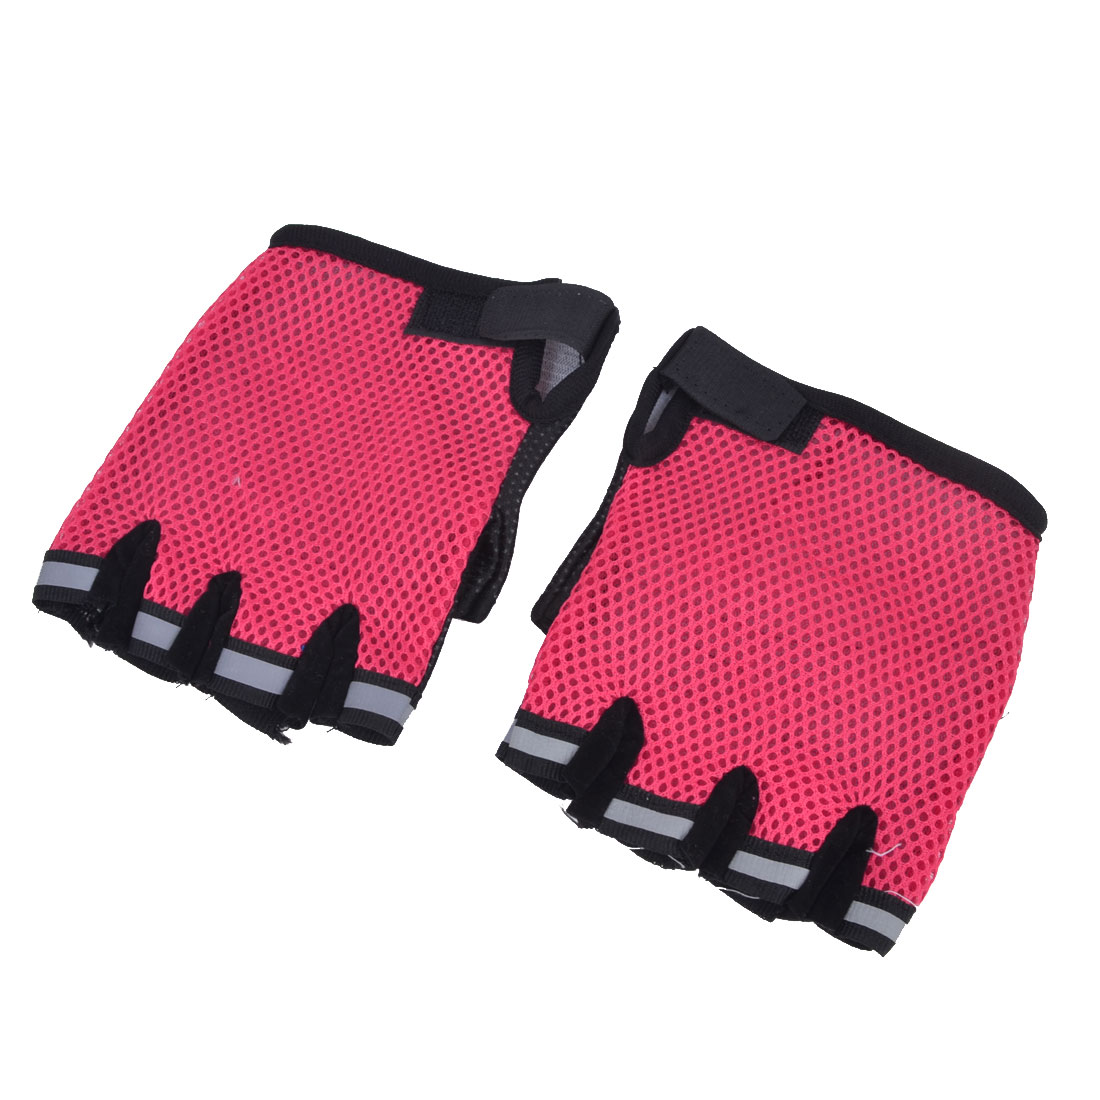 Unisex Pair Black Red Palm Hook Loop Closure Wrist Short Half Fingers Sports Gloves